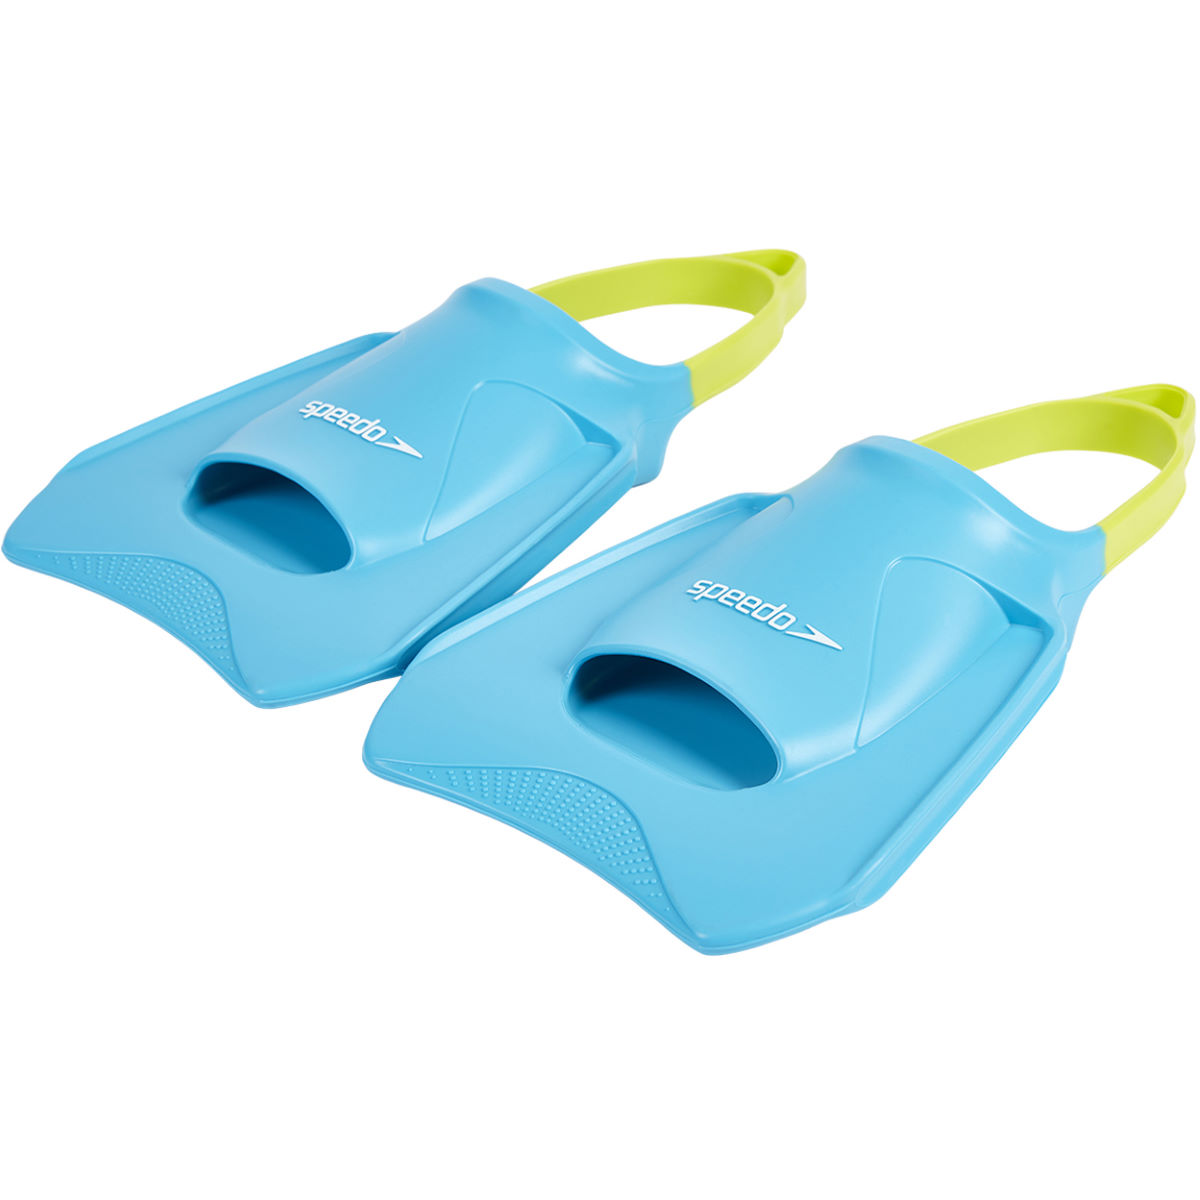 Image of Speedo Biofuse Fitness Fin Swimming Fins